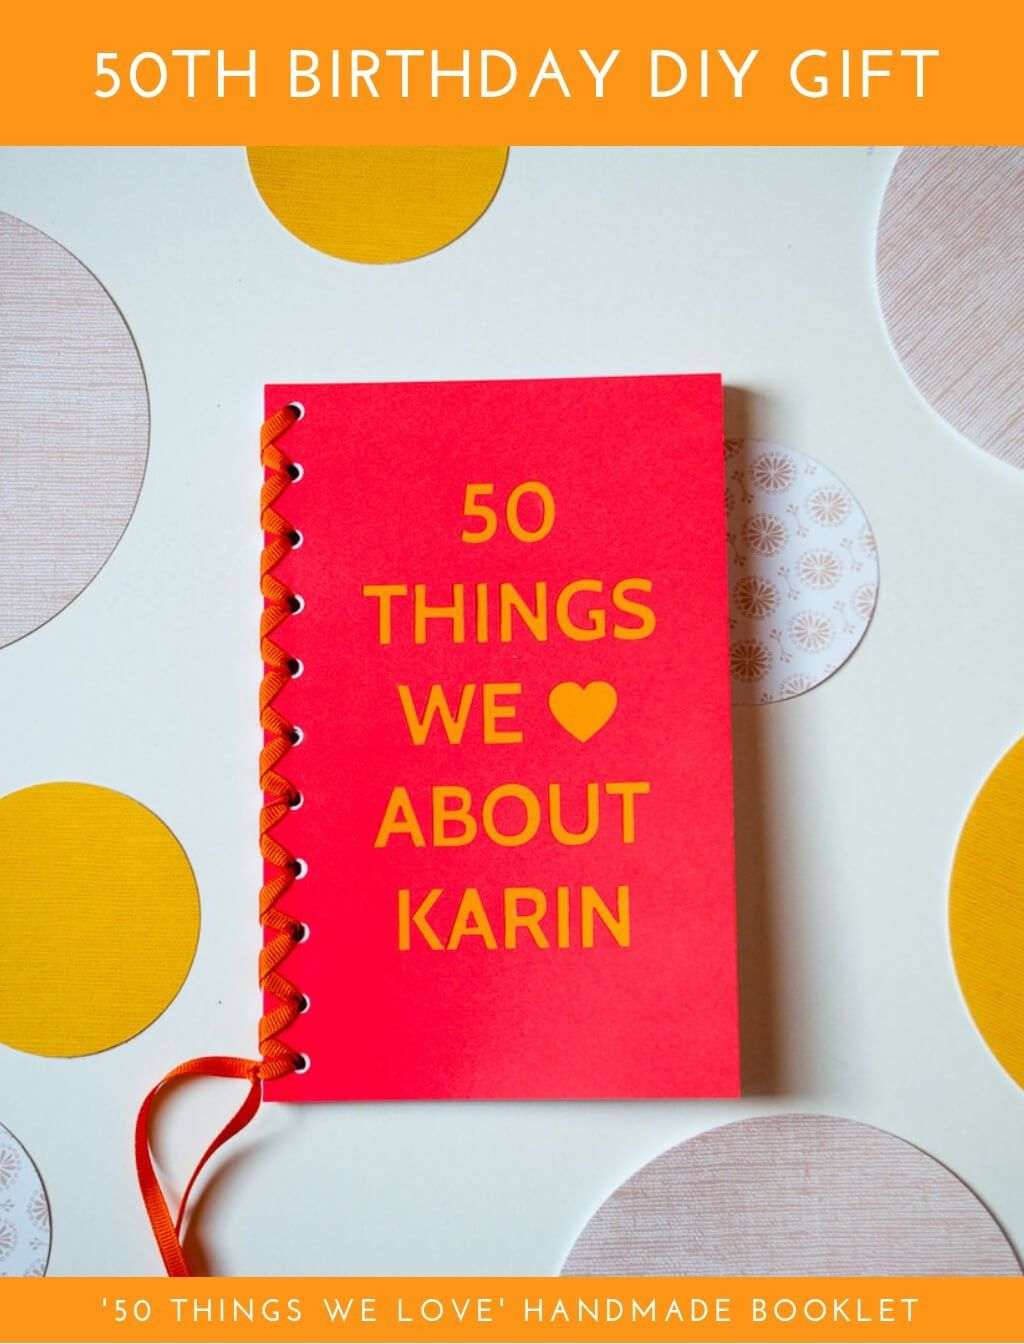 50 Things We Love About You Book 50th Birthday Gift Ideas